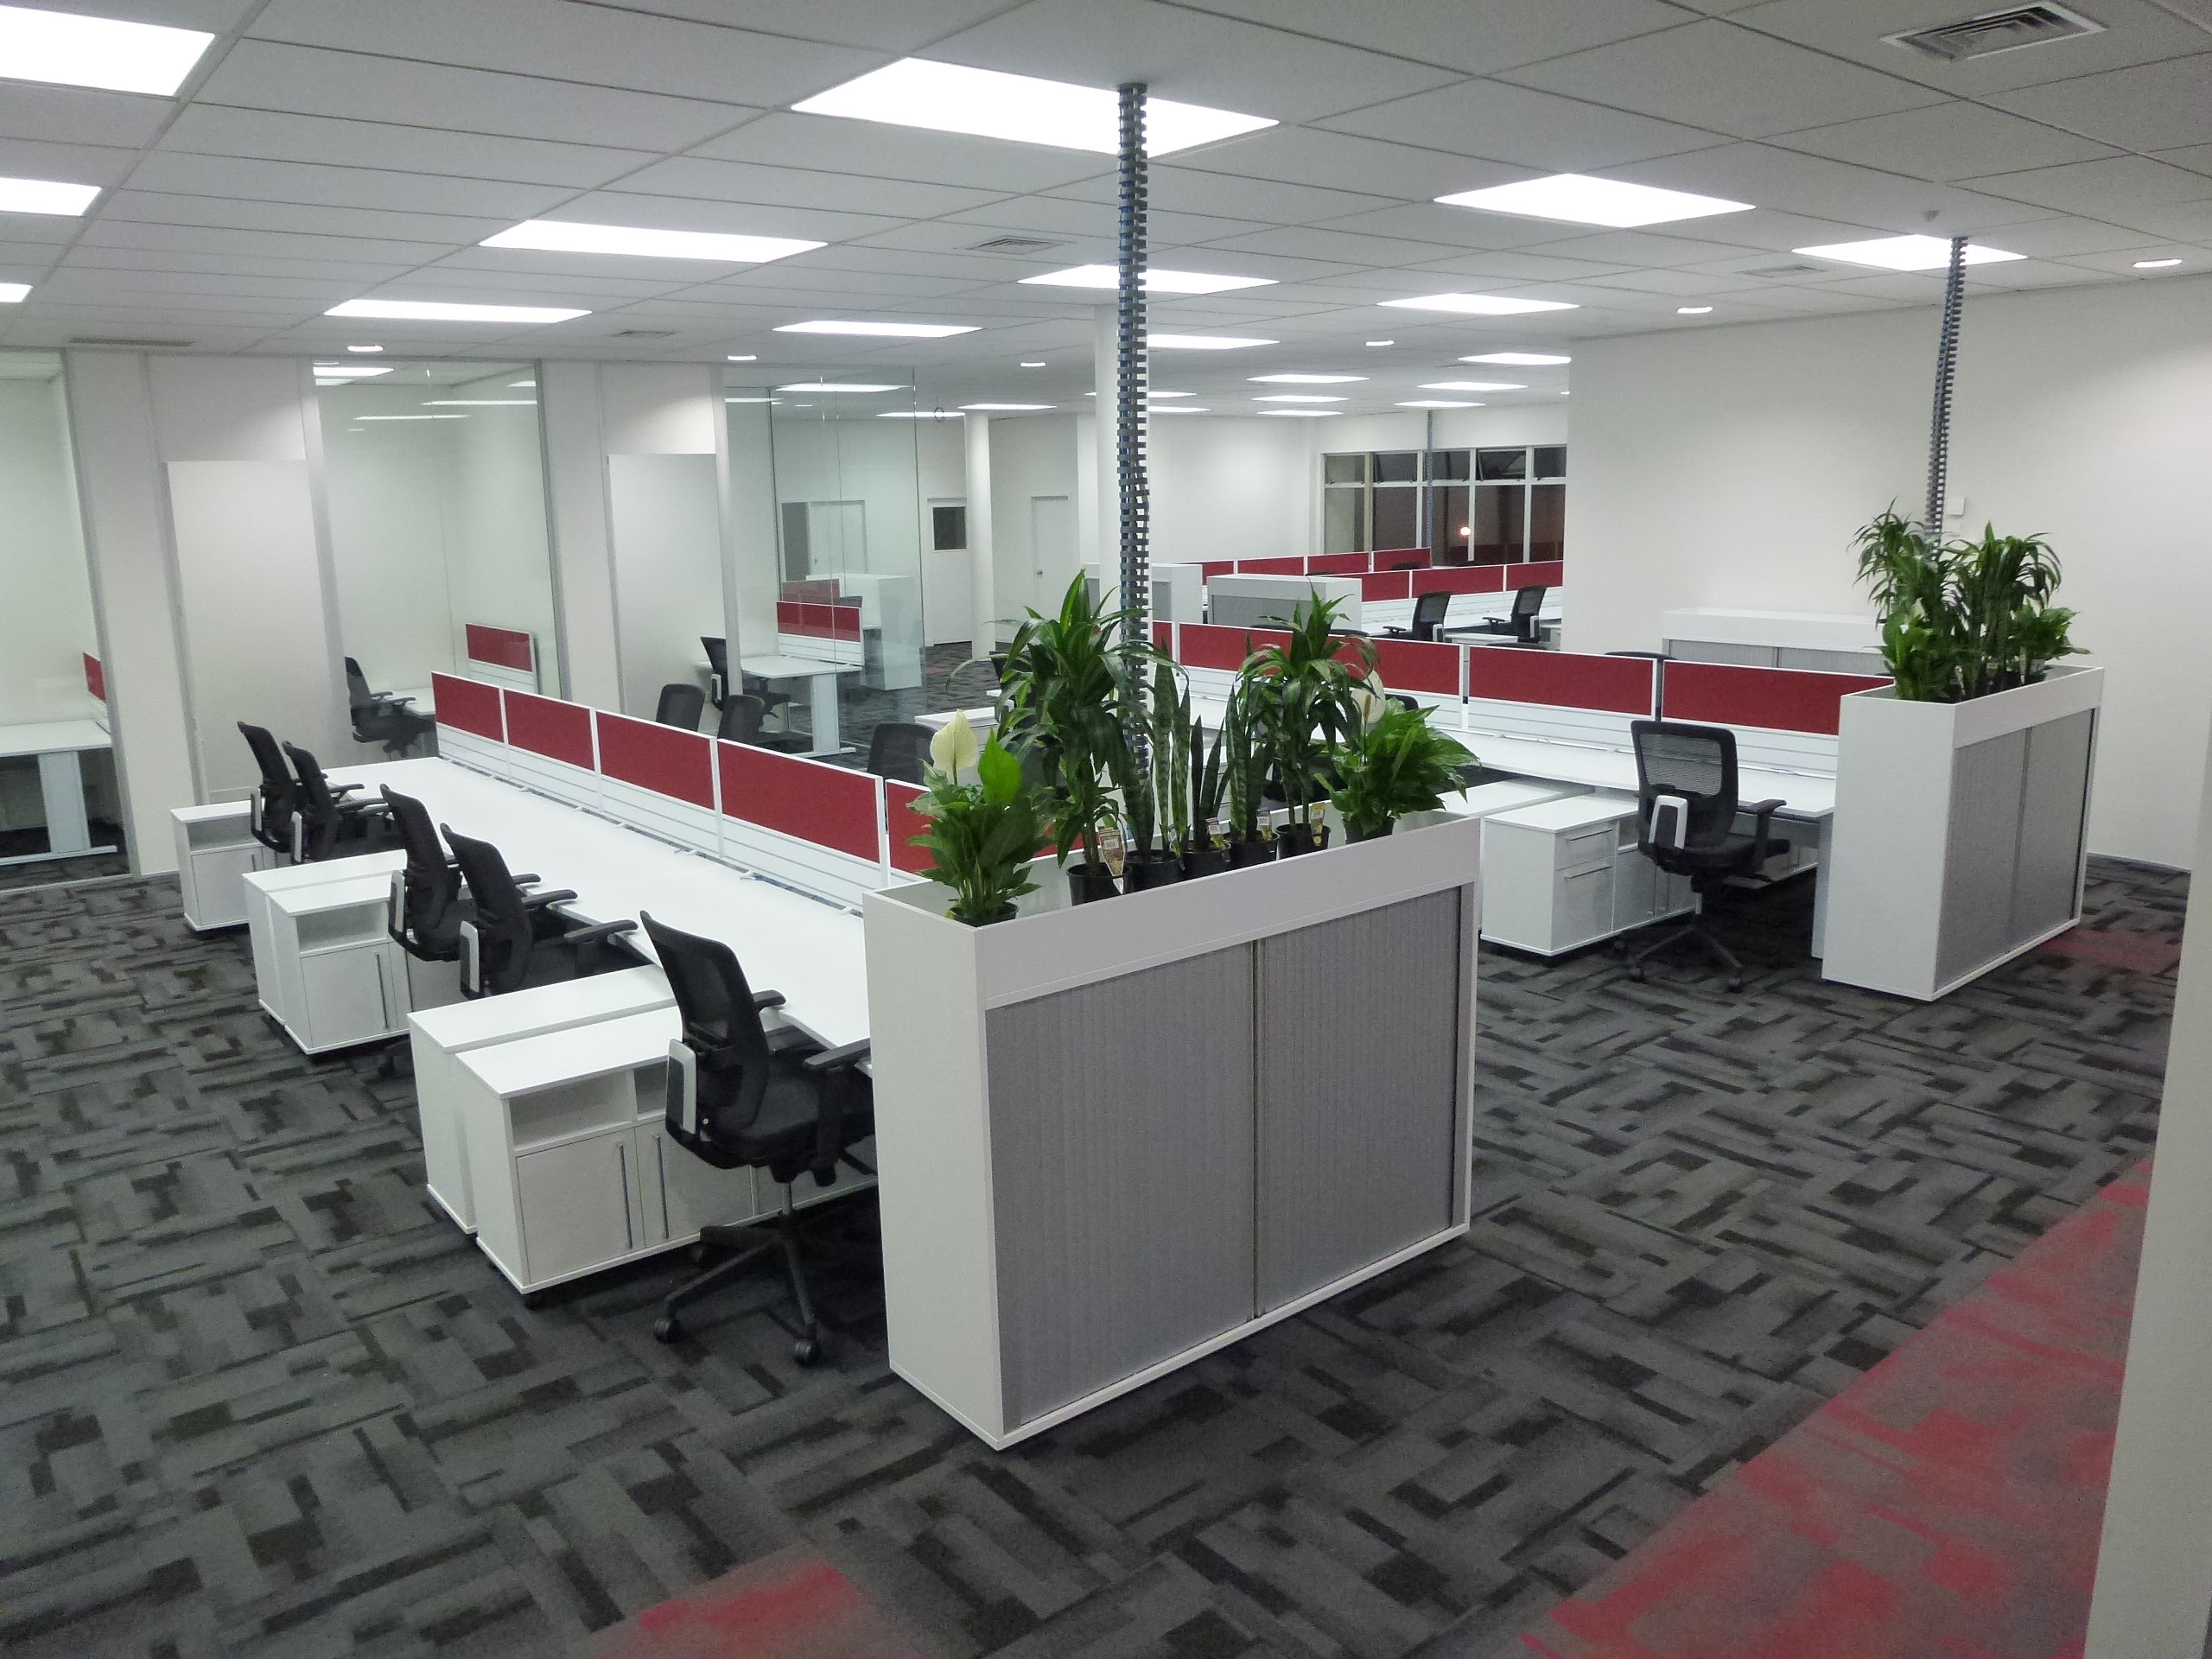 How I Found A Profesional Carpet Cleaning Company For My New Office Space